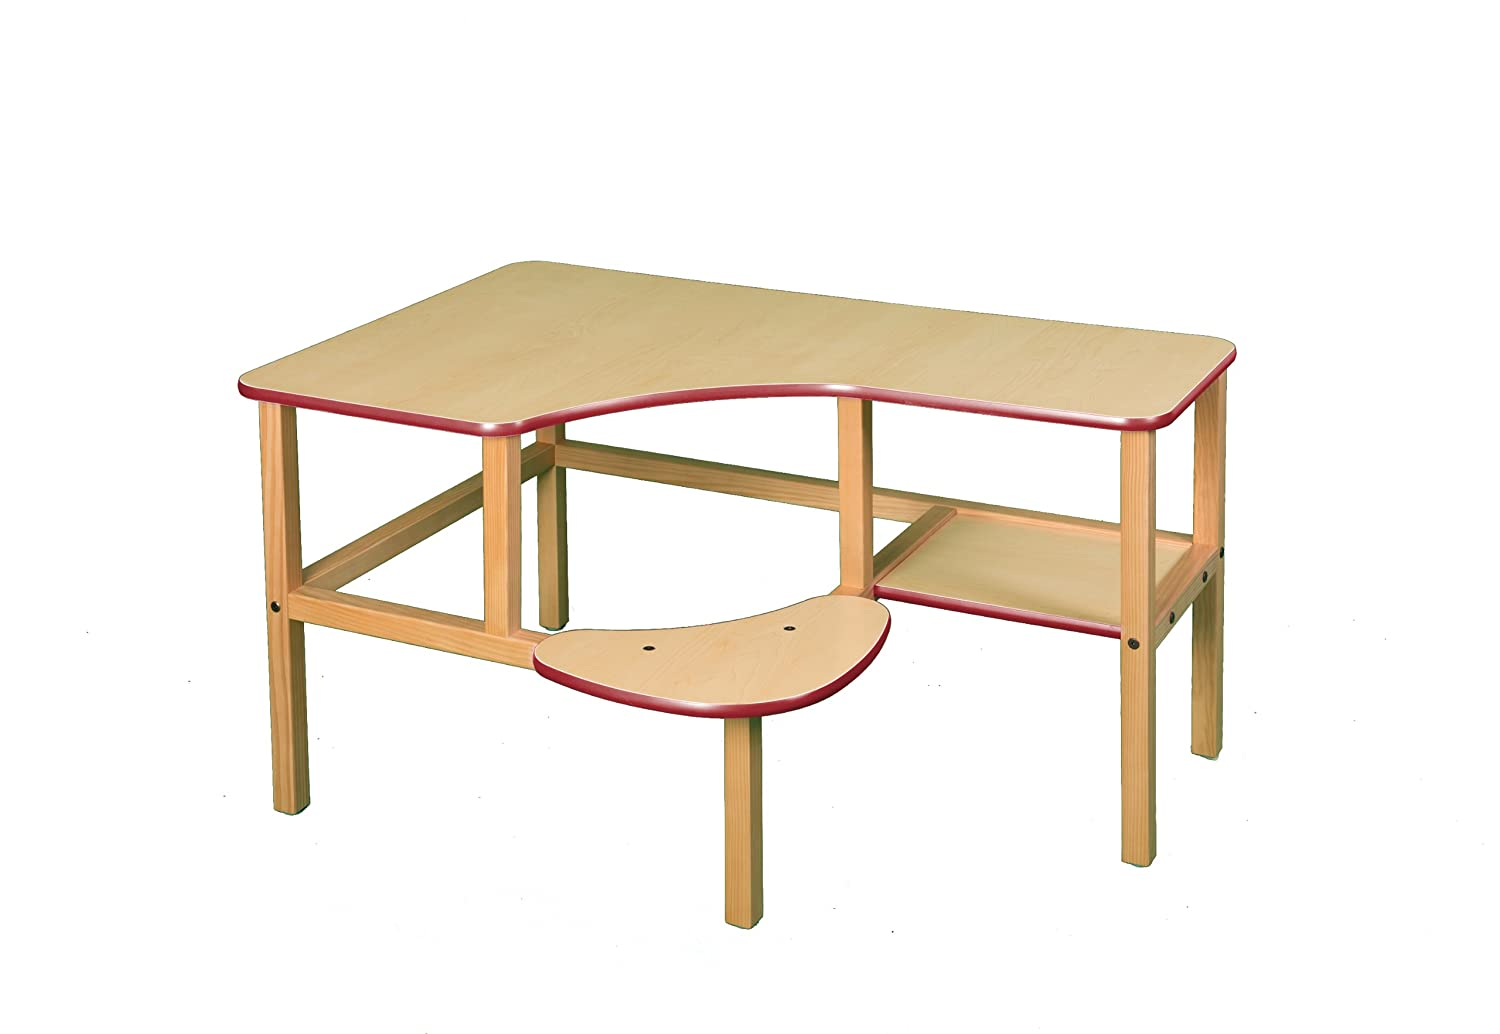 Wild Zoo Furniture Childs Wooden Computer Desk for 1, Ages 2 to 5, Maple Red